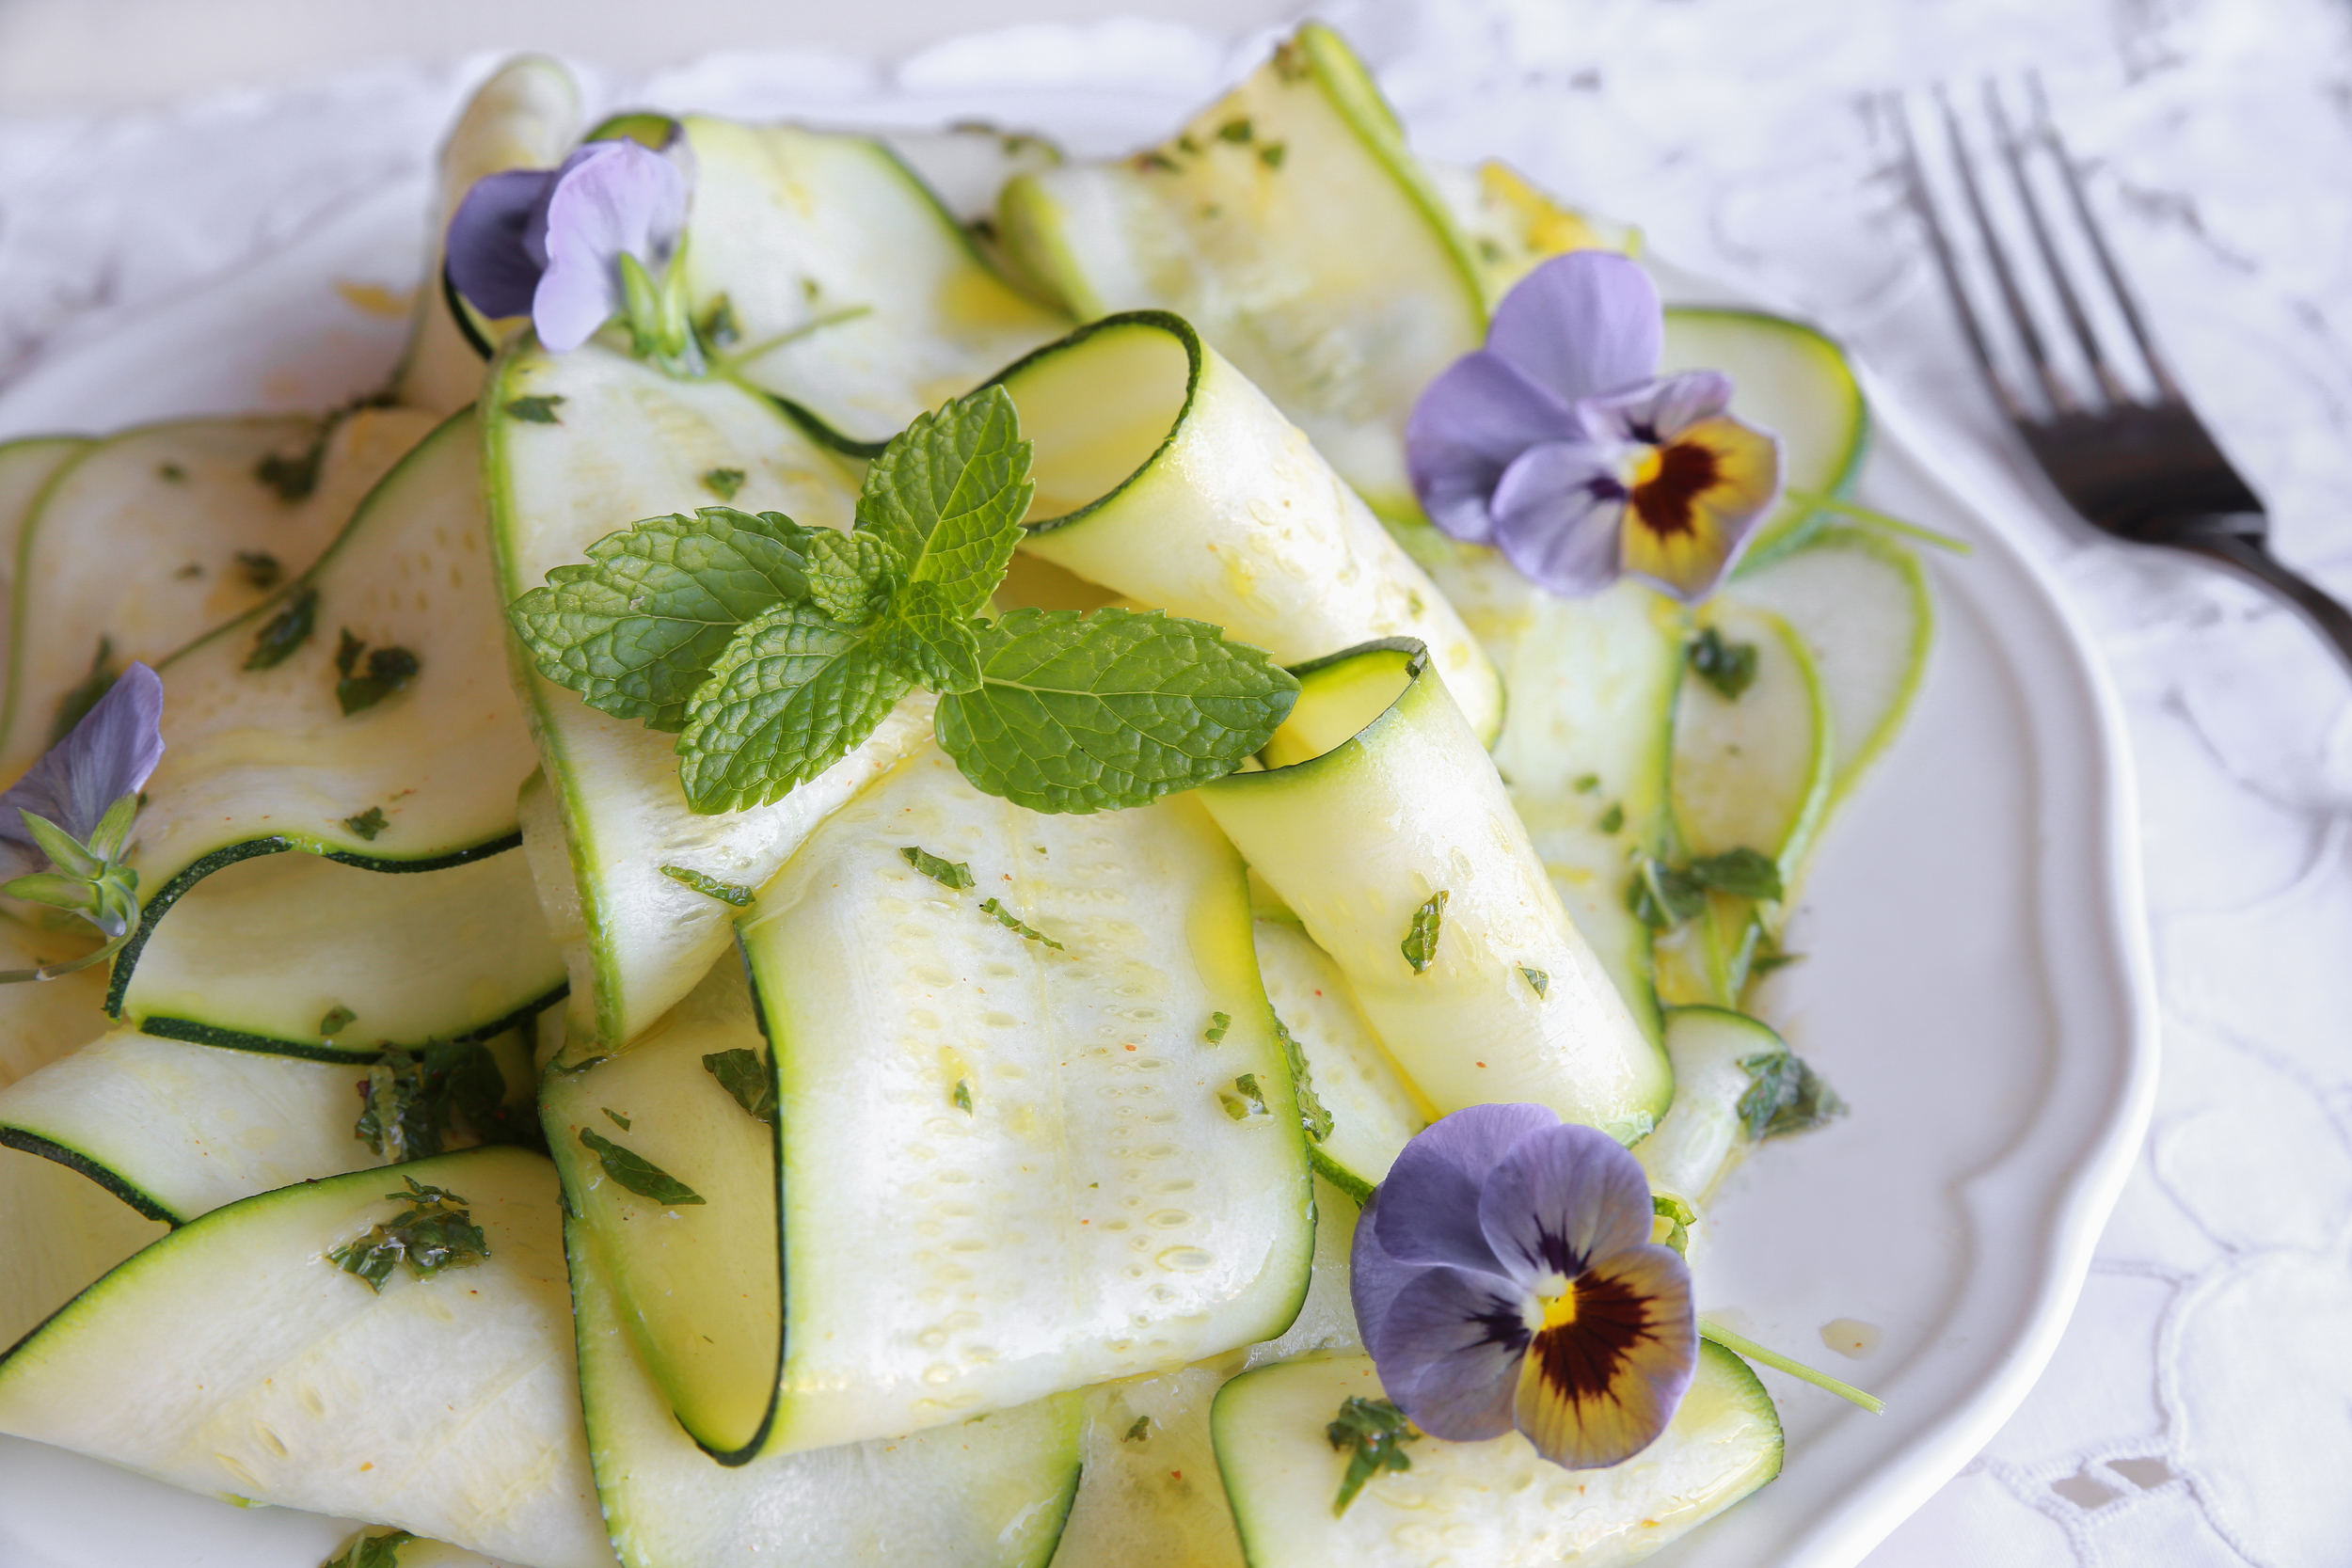 Add pansy petals to sliced courgette and garnish with mint